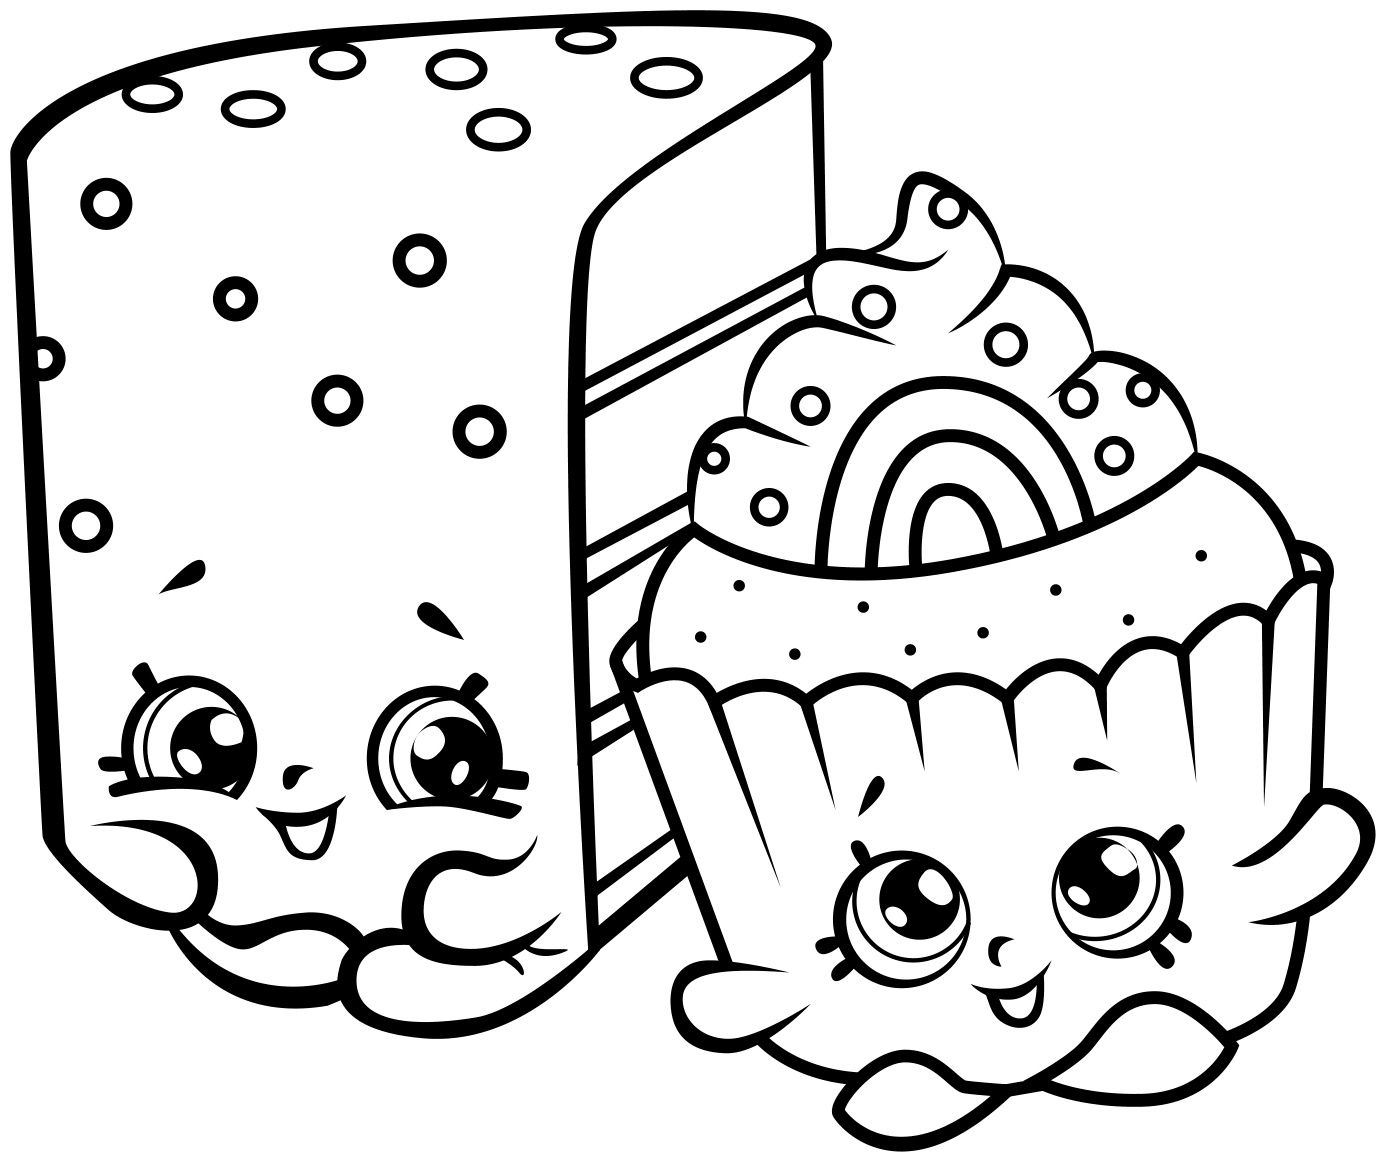 Print Shopkins Strawberry Smile Coloring Pages Shopkins Coloring Pages Free Printable Shopkins Colouring Pages Shopkin Coloring Pages